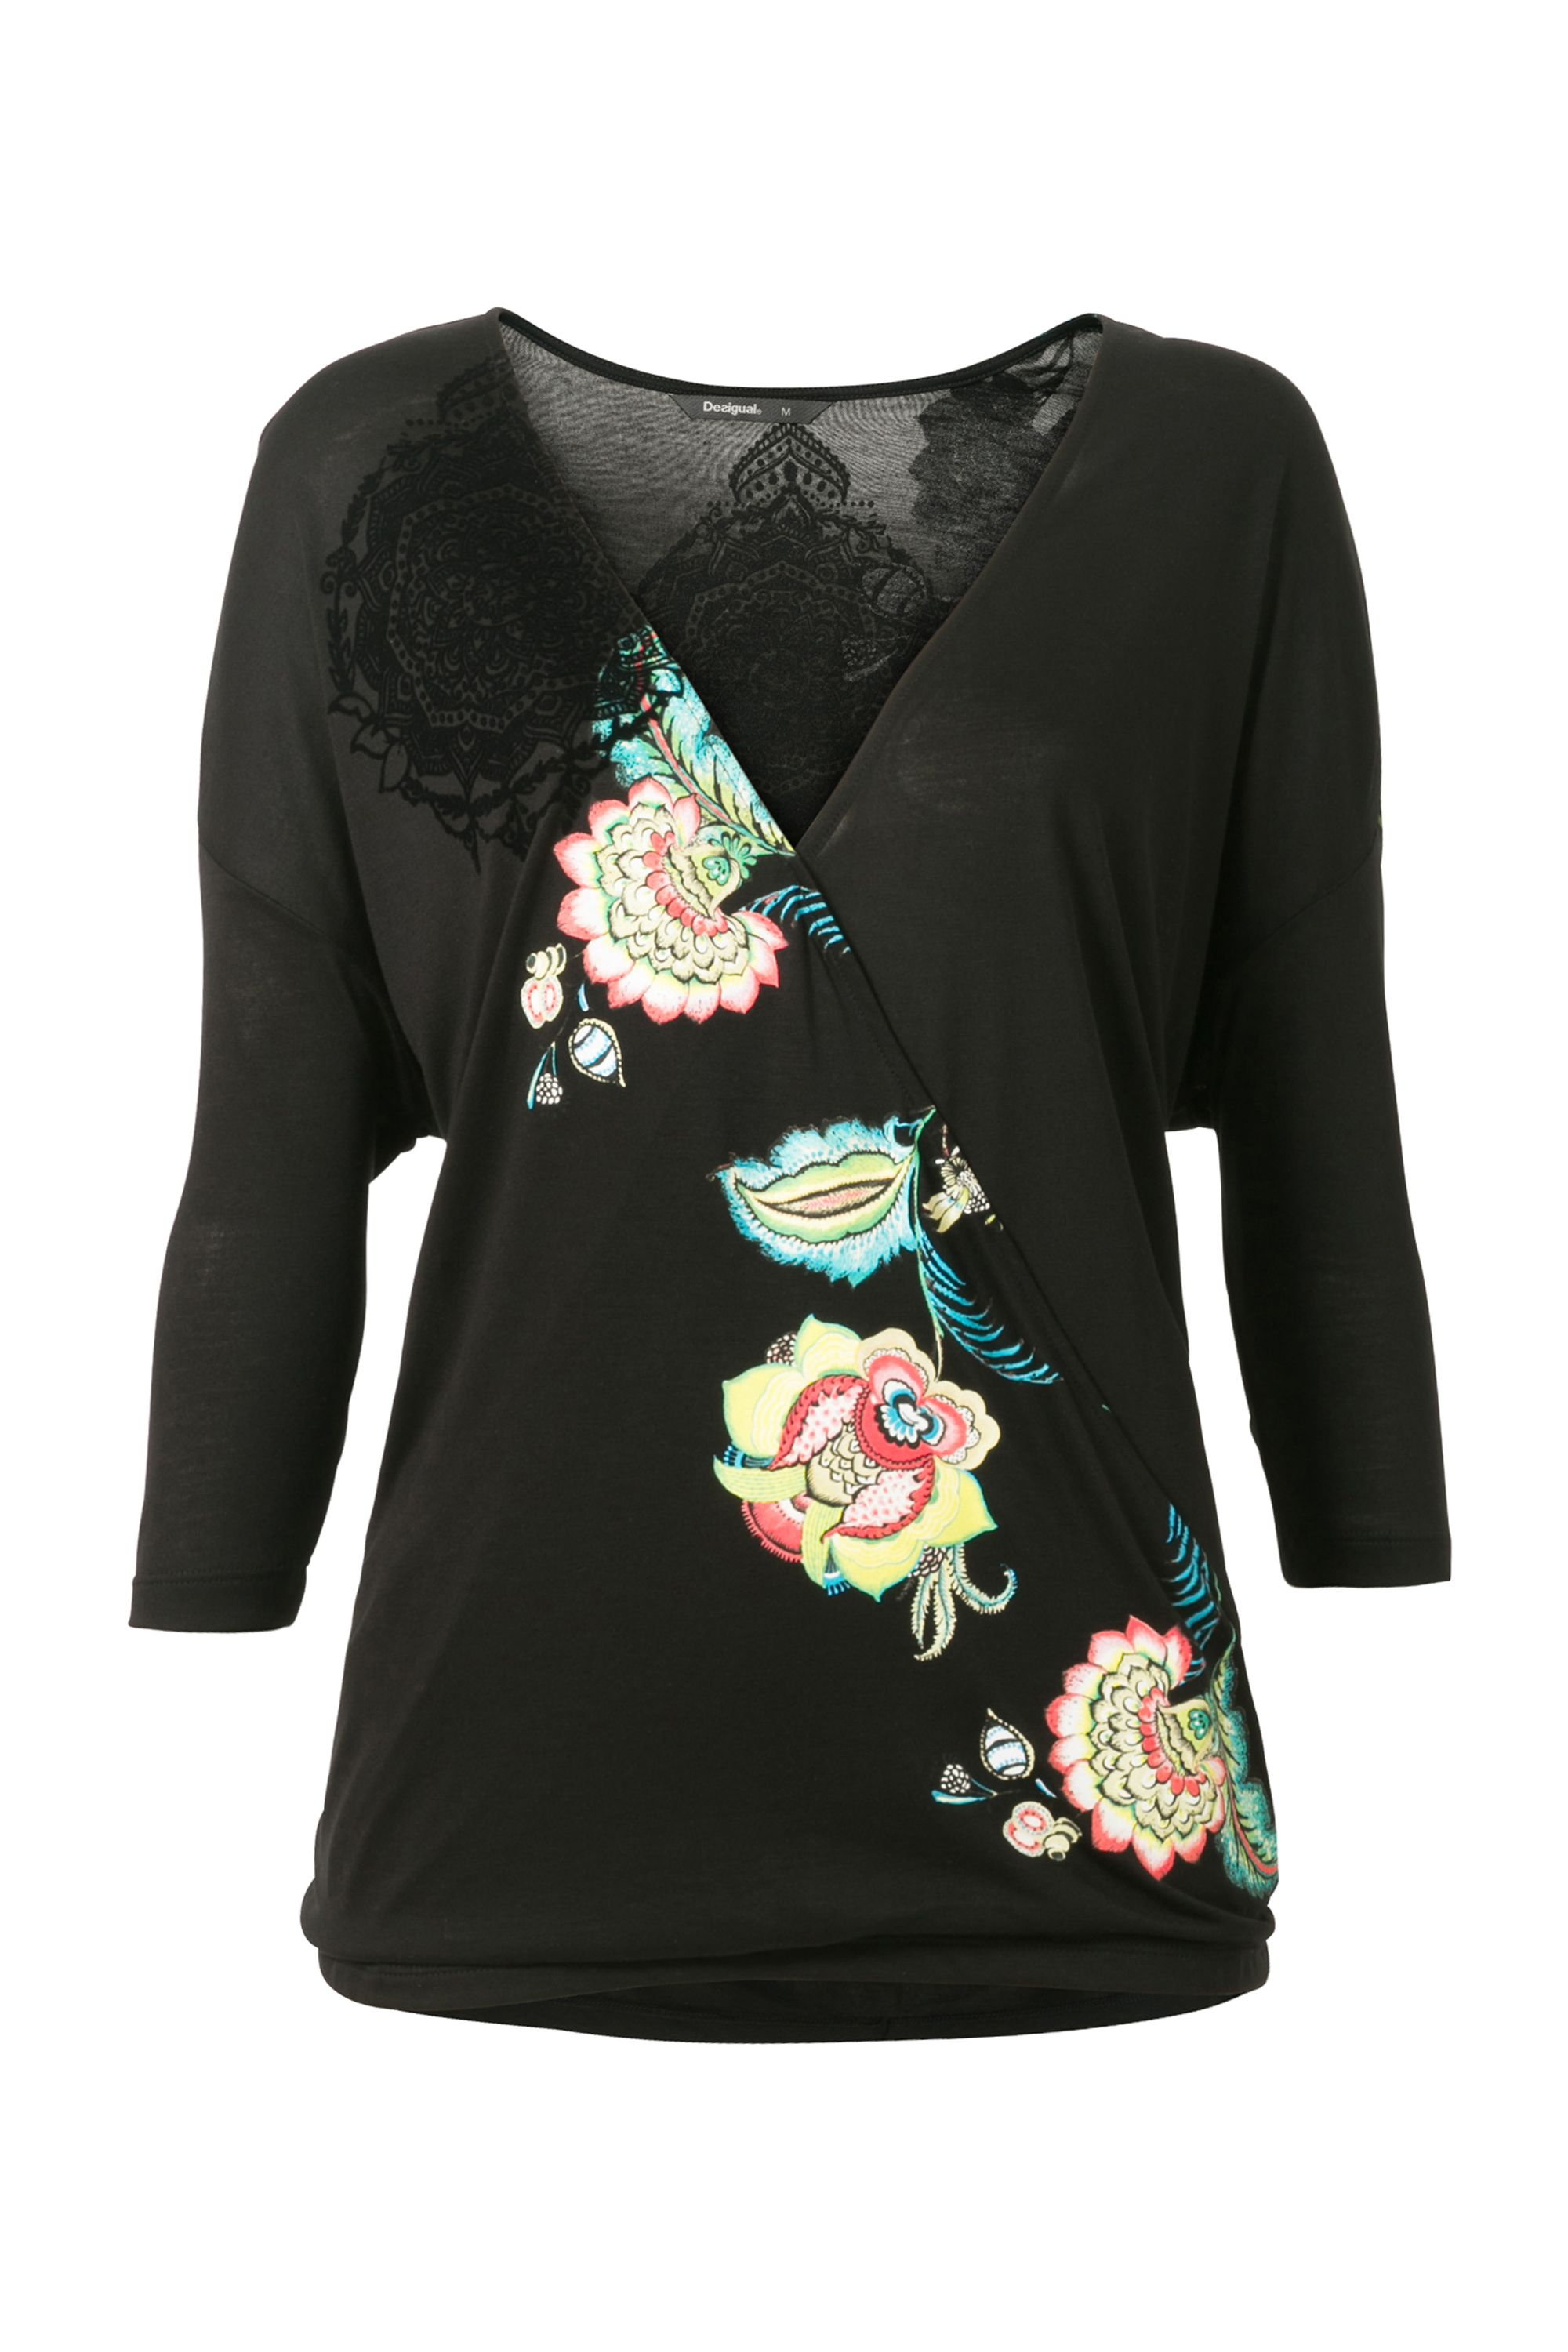 Desigual T-Shirt Alicia, Black